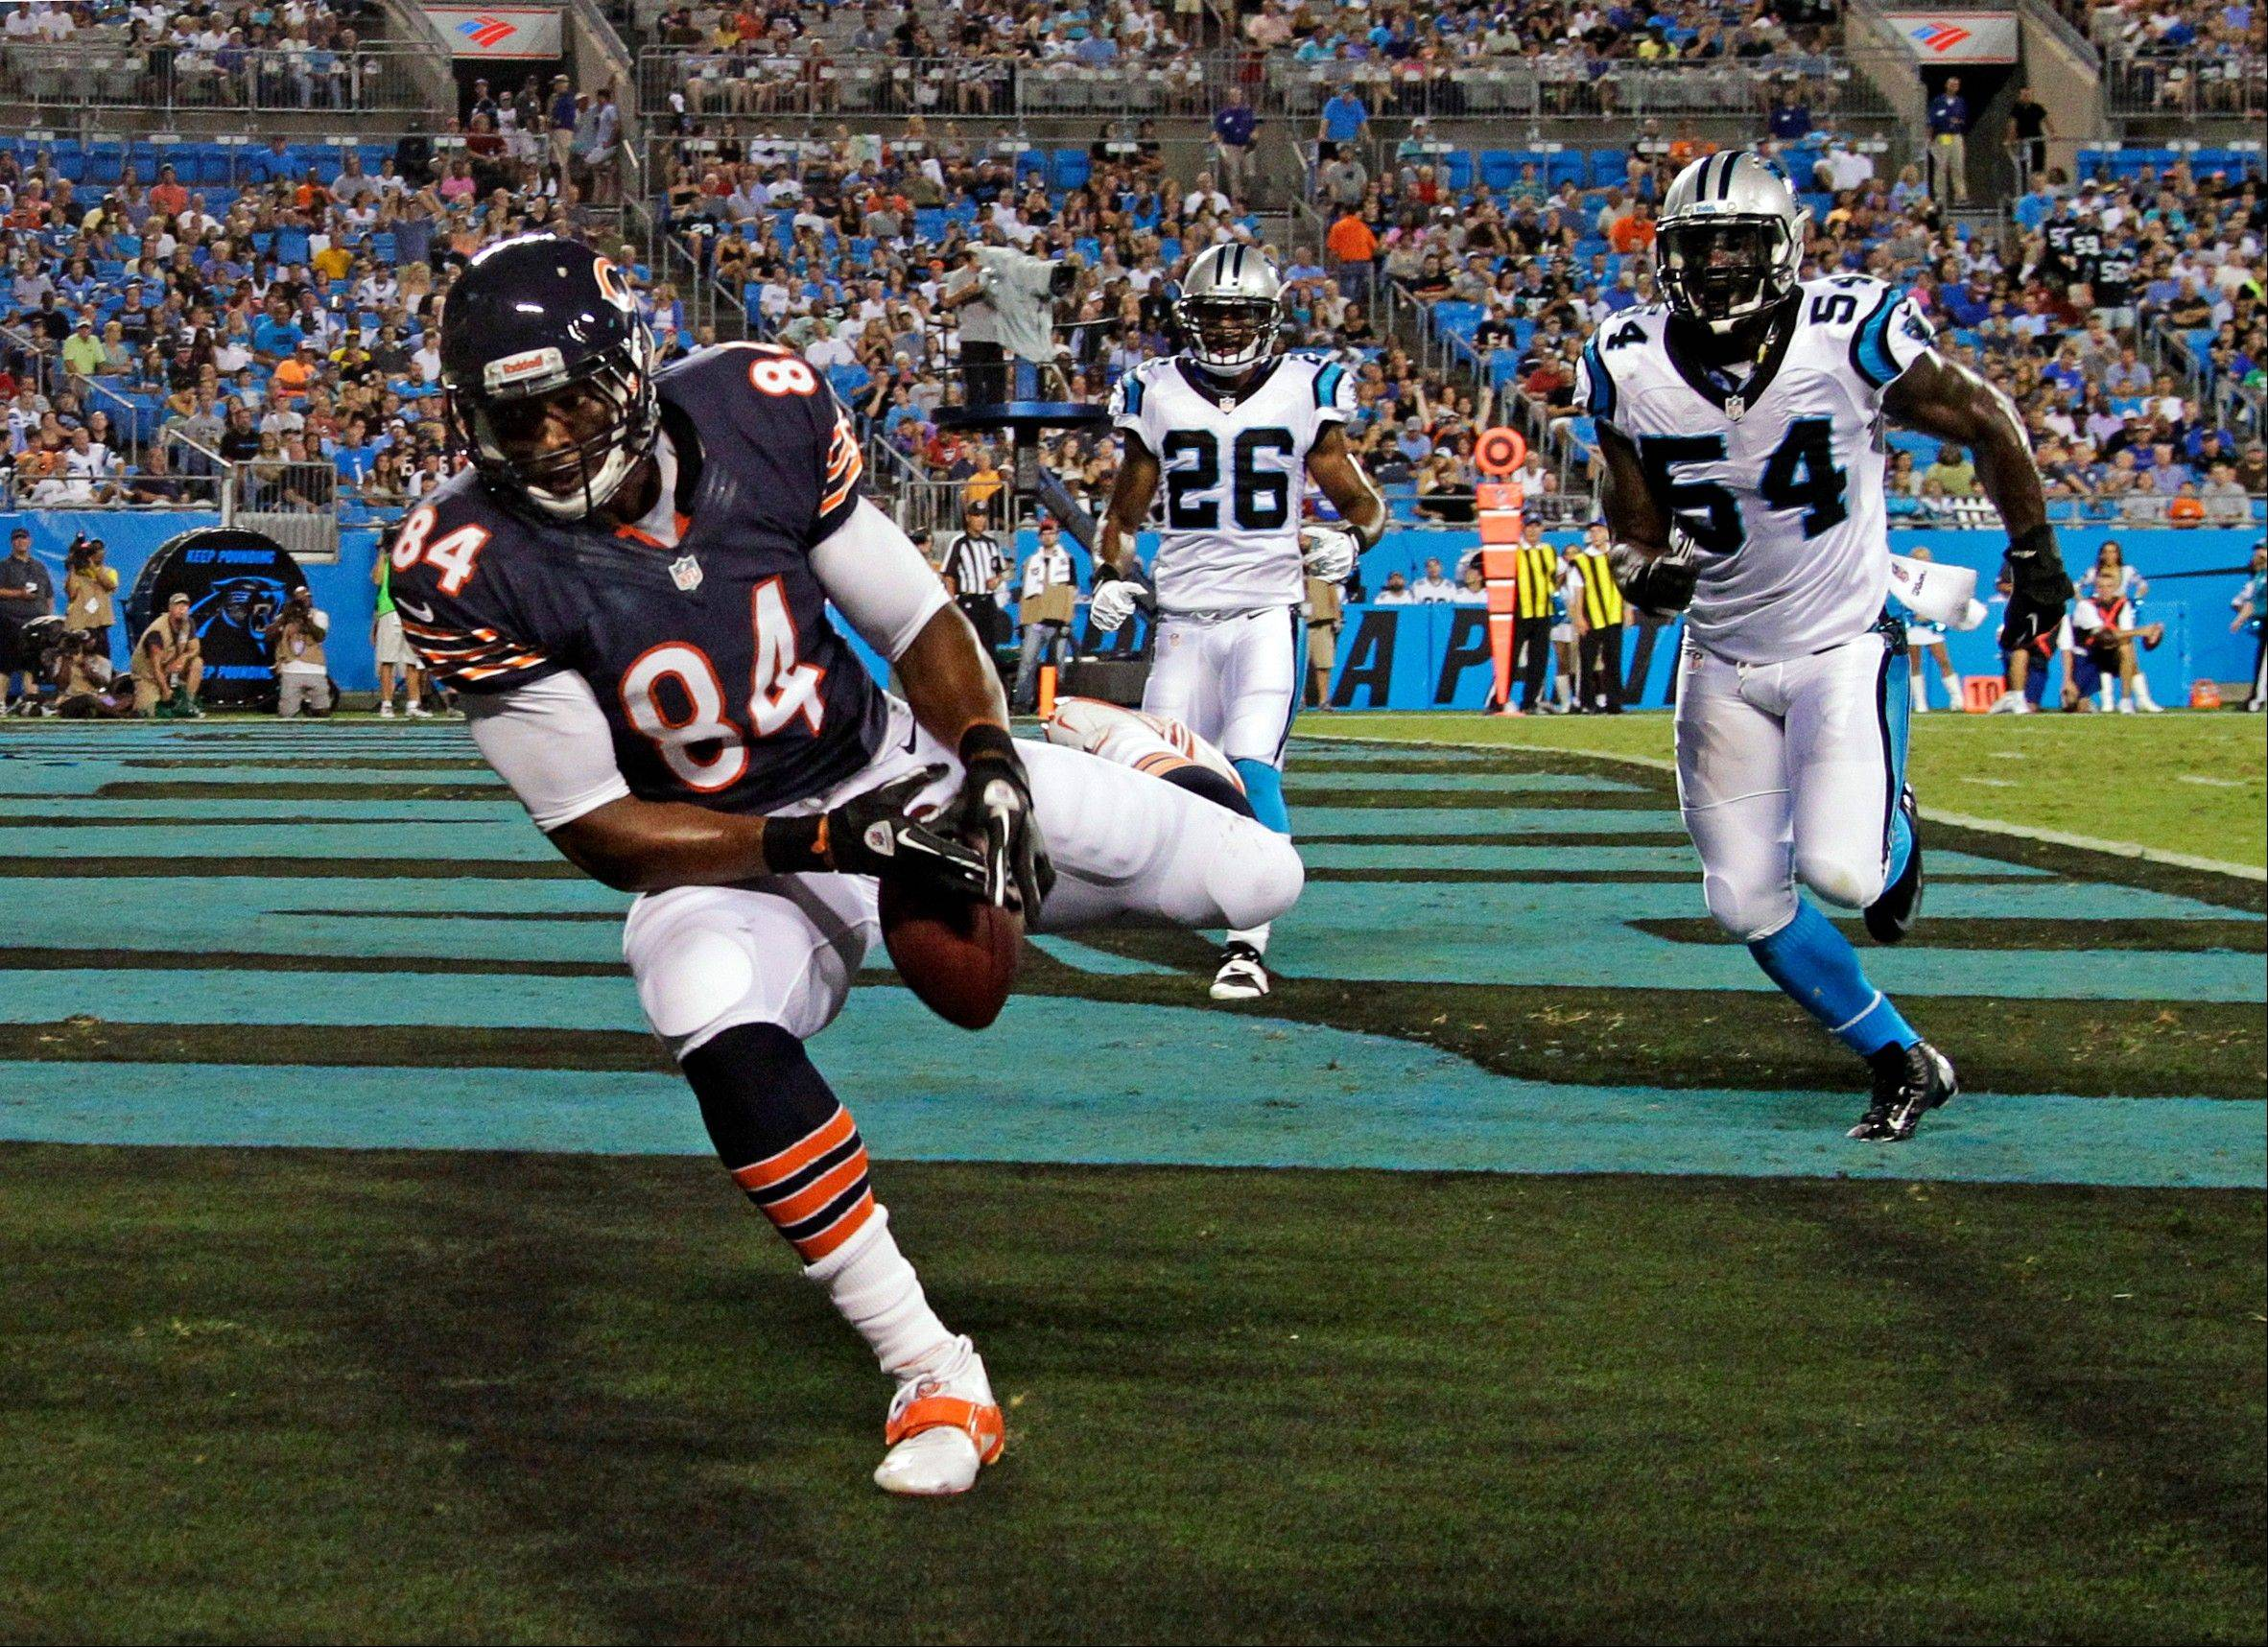 Bears' preseason opener quite a mixed bag